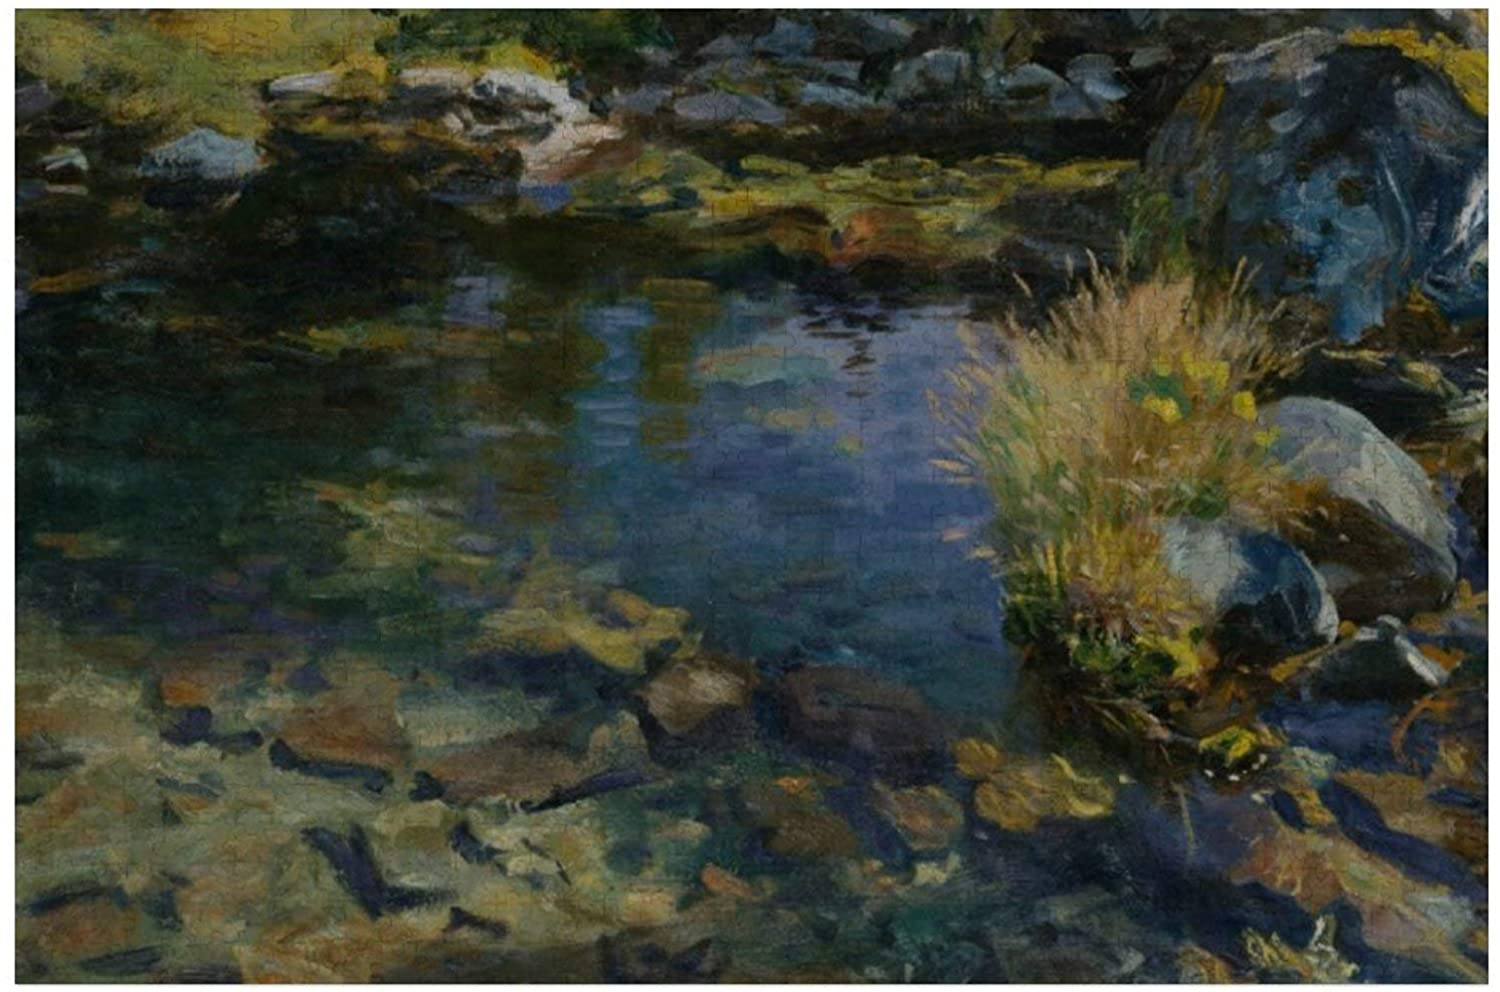 John Singer Sargent Alpine Pool Puzzles for Adults, 1000 Piece Kids Jigsaw Puzzles Game Toys Gift for Children Boys and Girls, 20